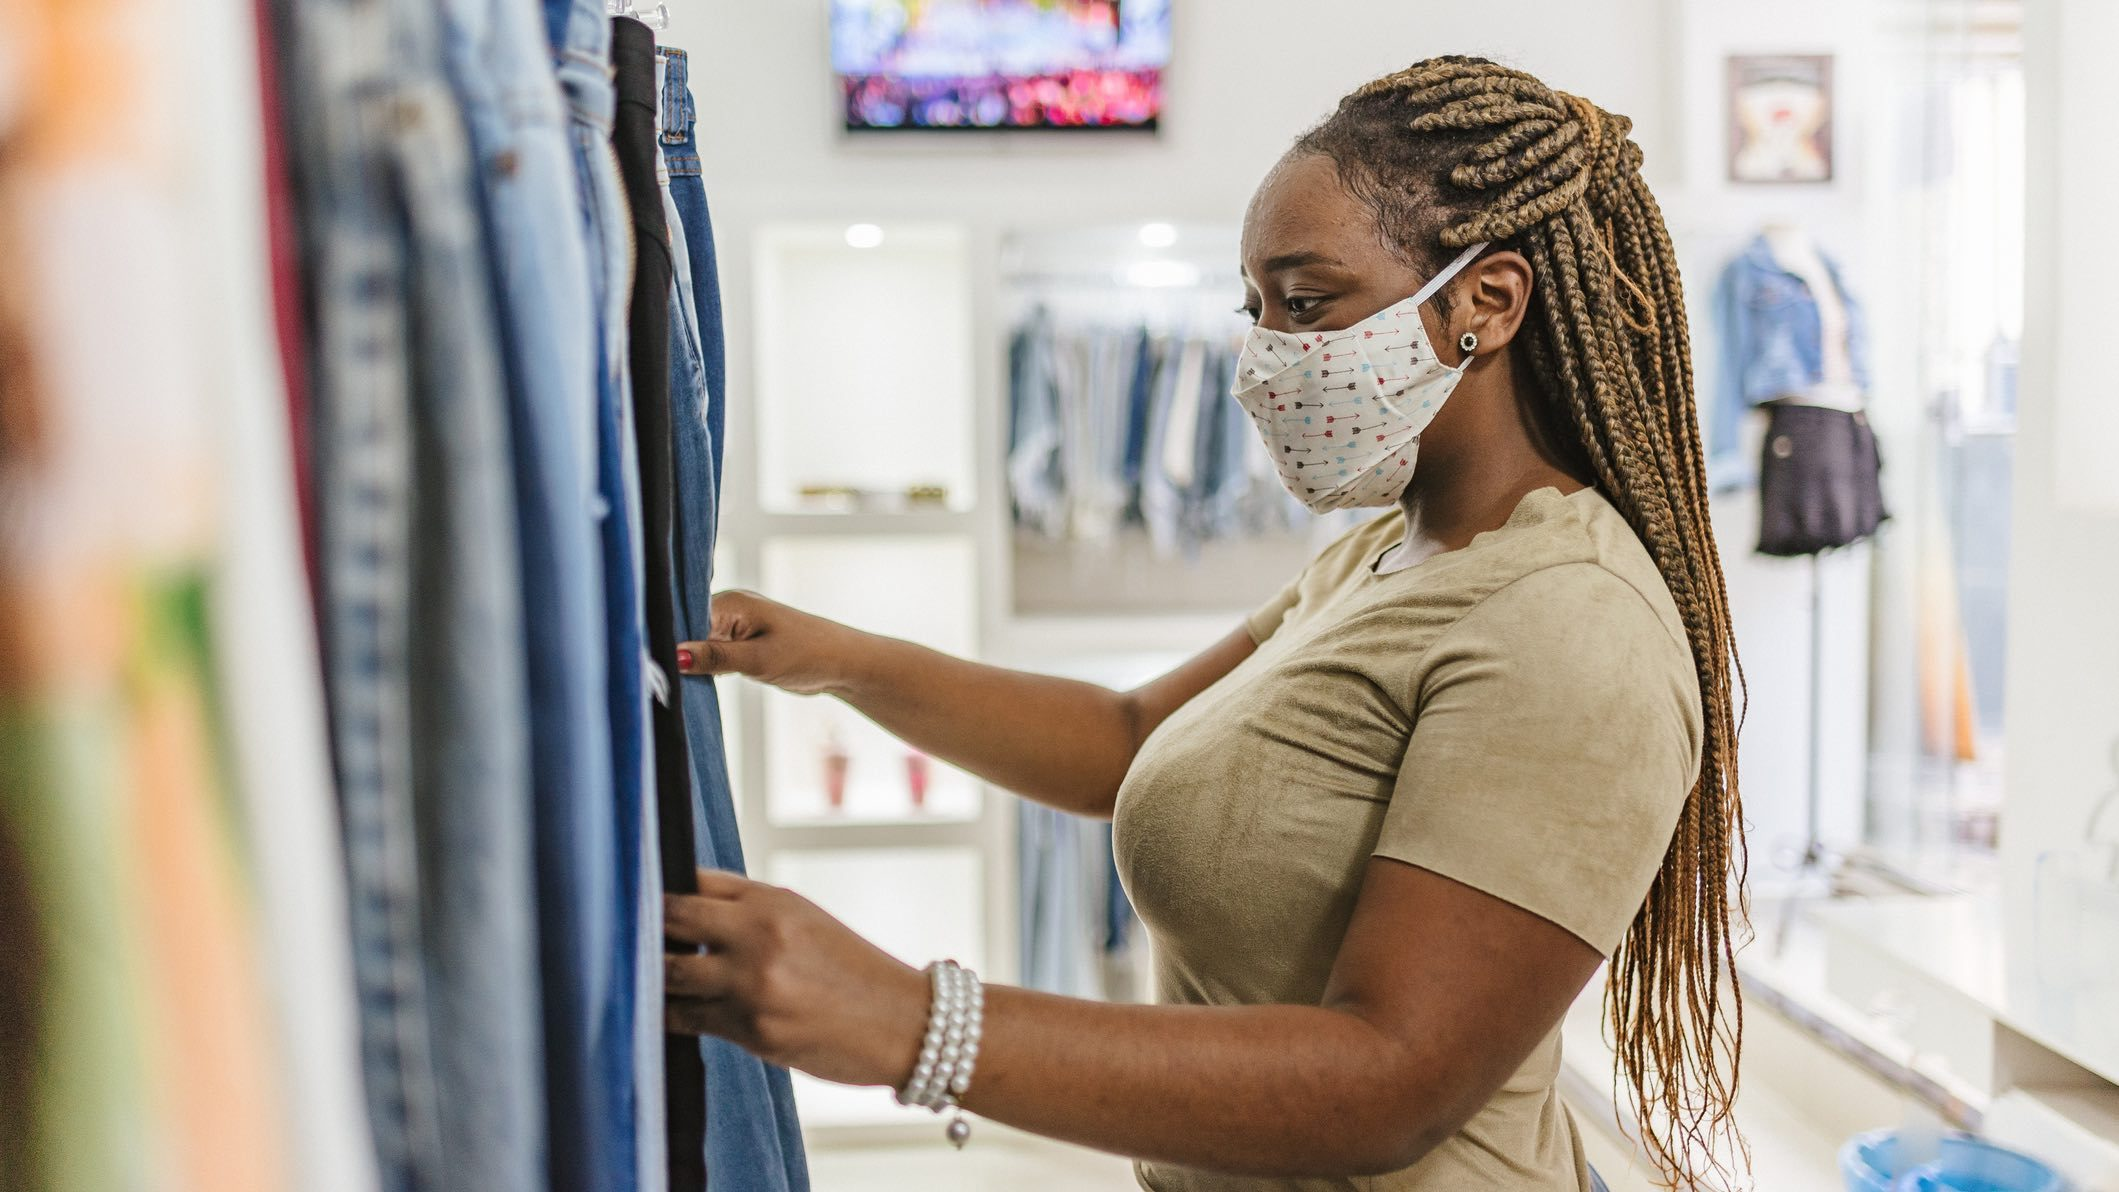 Person shopping for clothes in face mask as spending increases.